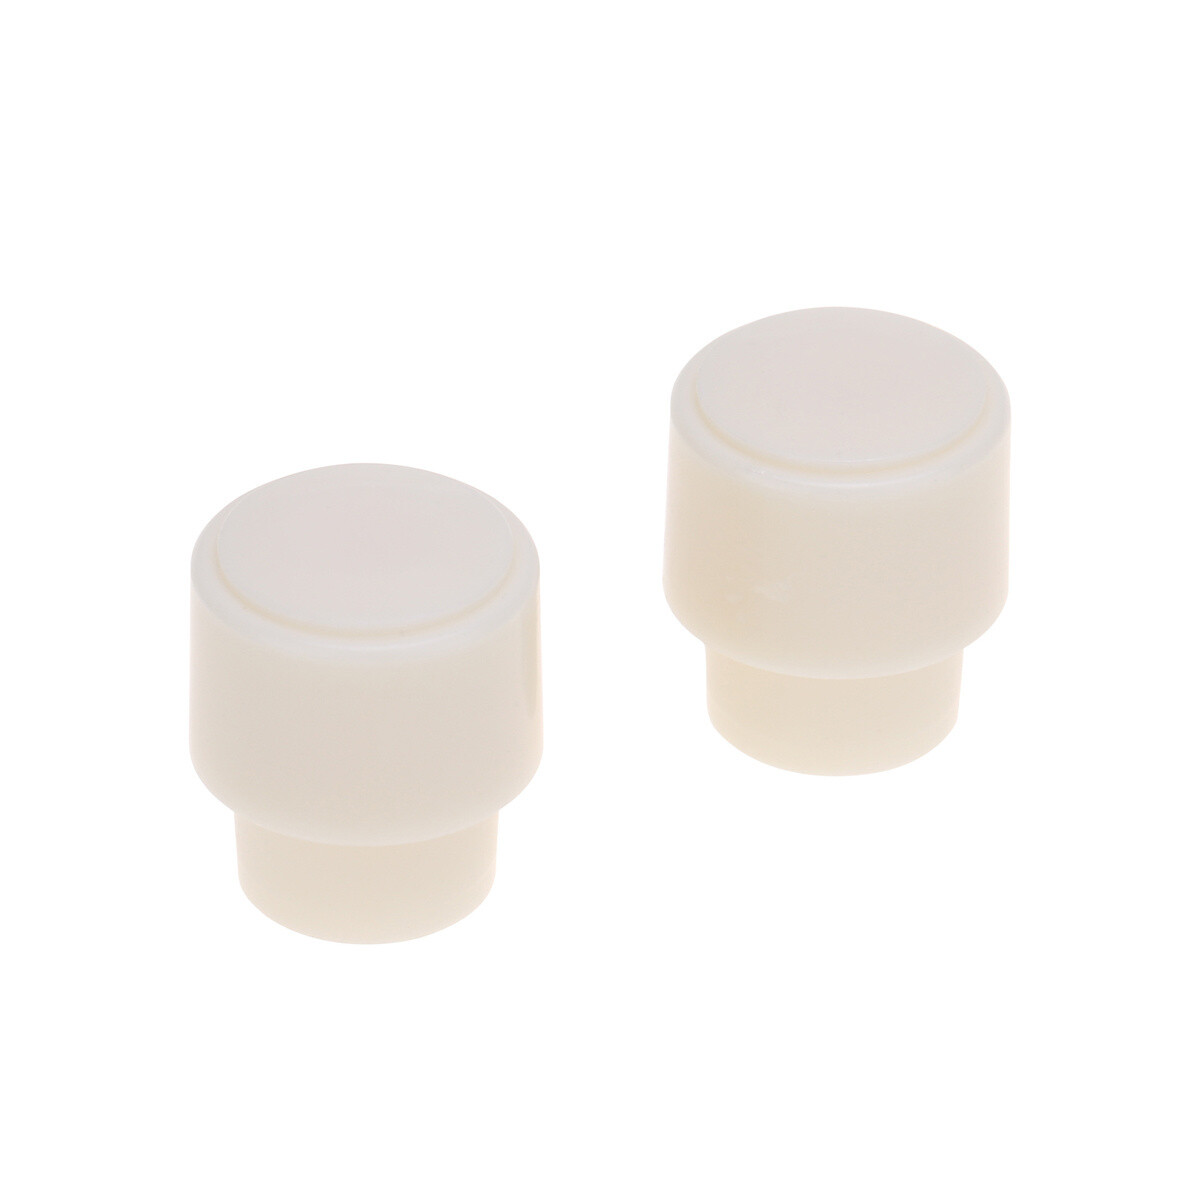 2 x USA Size Telecaster Barrel Switch Tip ( CRL ) Parchment. ( Aged White )